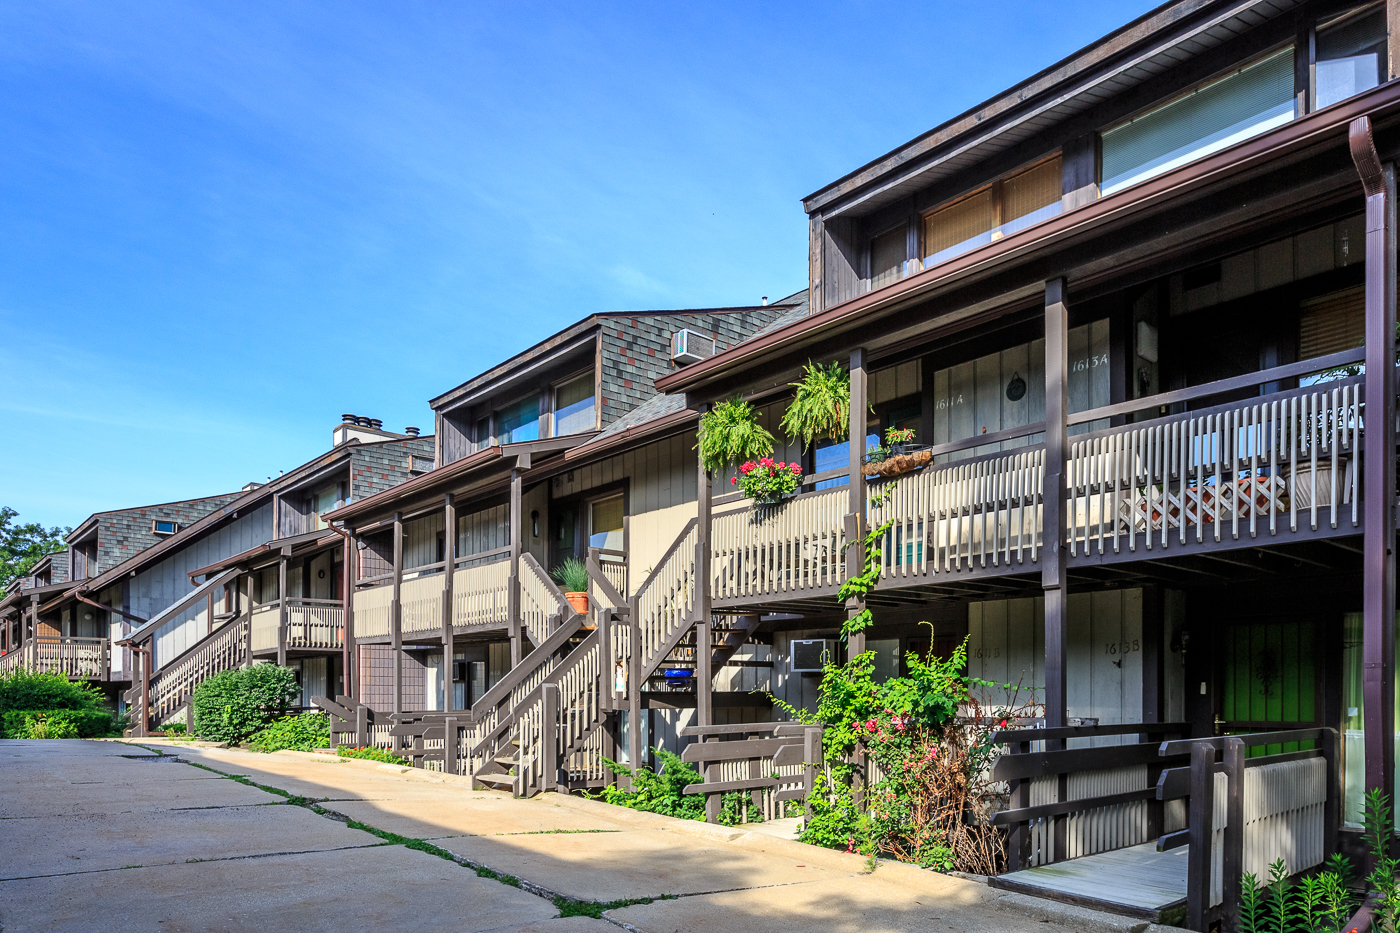 Timber Top Apartments & Townhomes - Timber Top Apartments & Townhomes